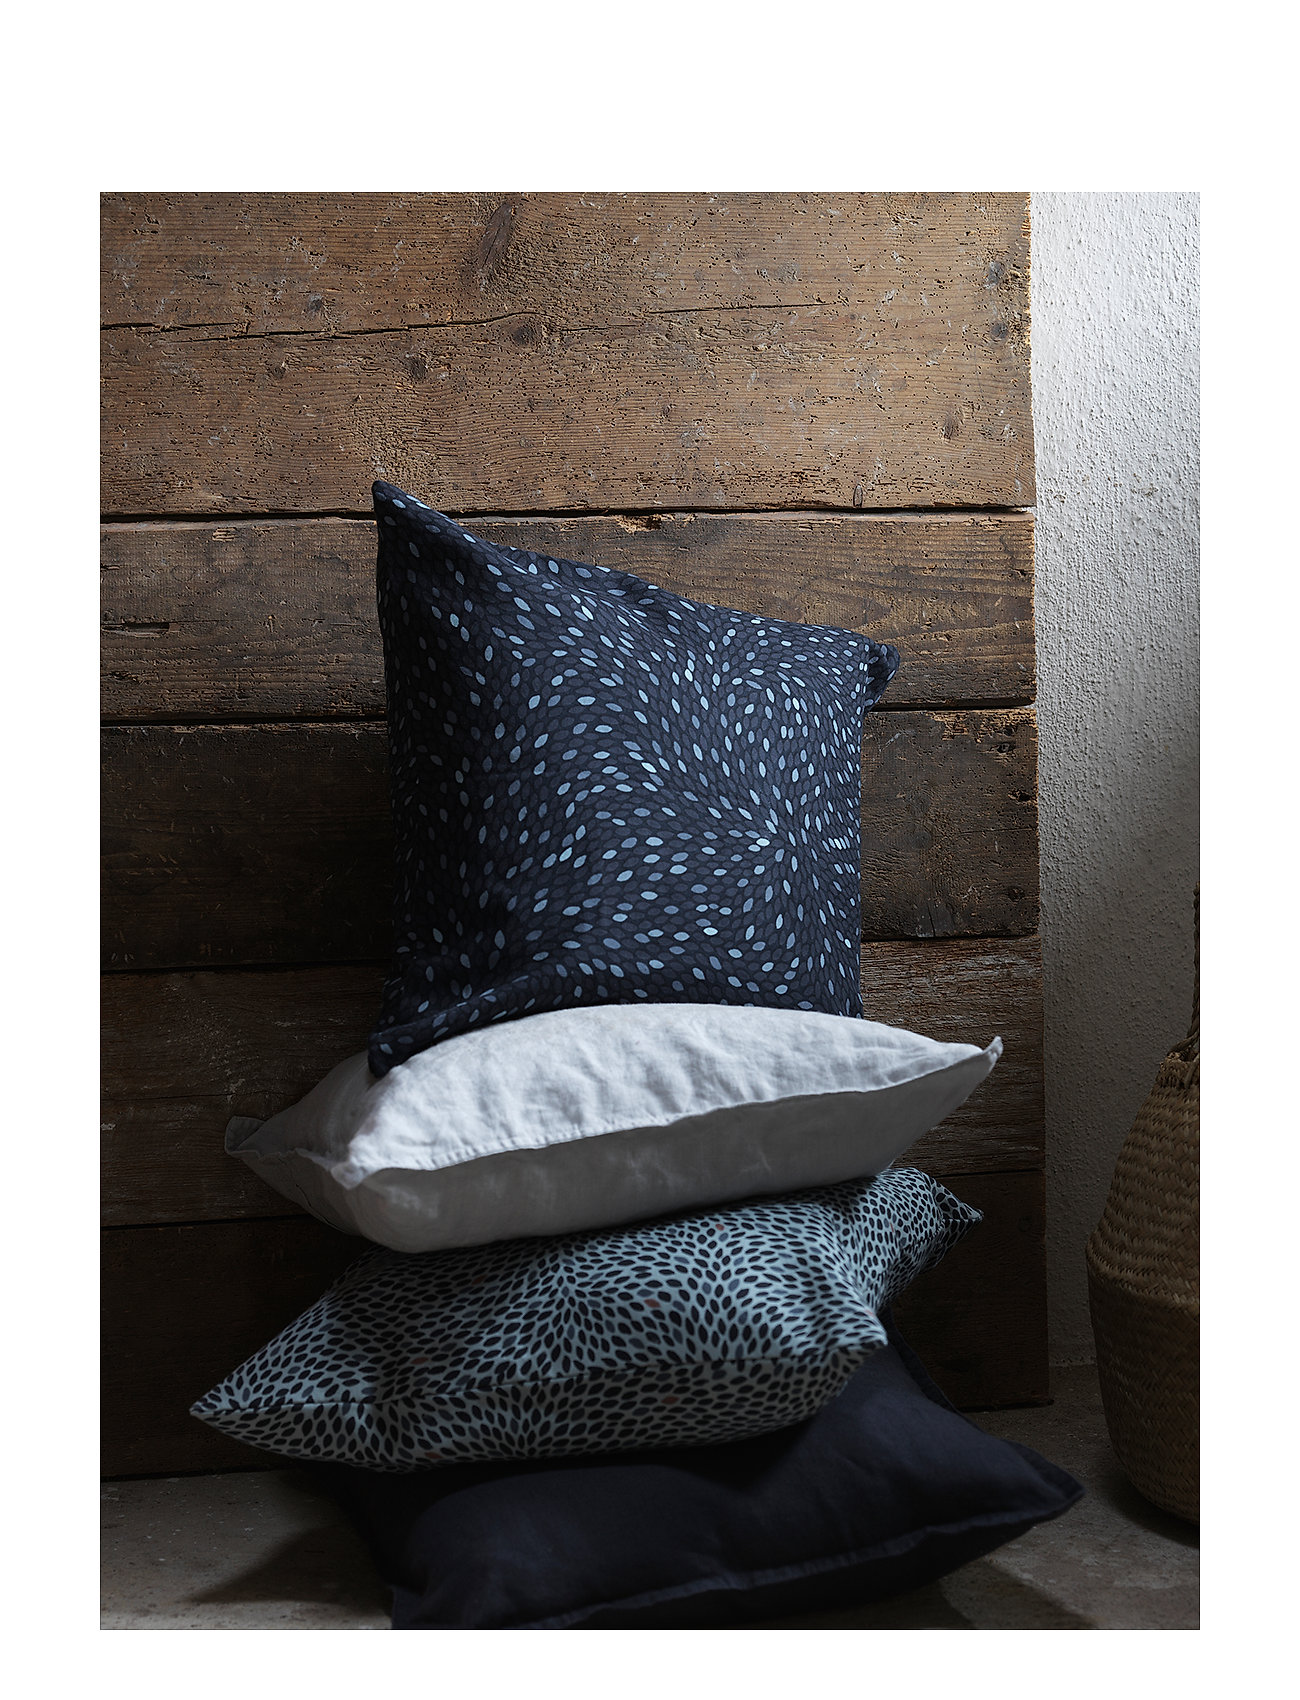 Lovismidnight Lovismidnight Lovismidnight BlueGripsholm Cover BlueGripsholm Cushion Cover Cover Lovismidnight Cushion BlueGripsholm Cushion Cushion Cover n0OmN8wv